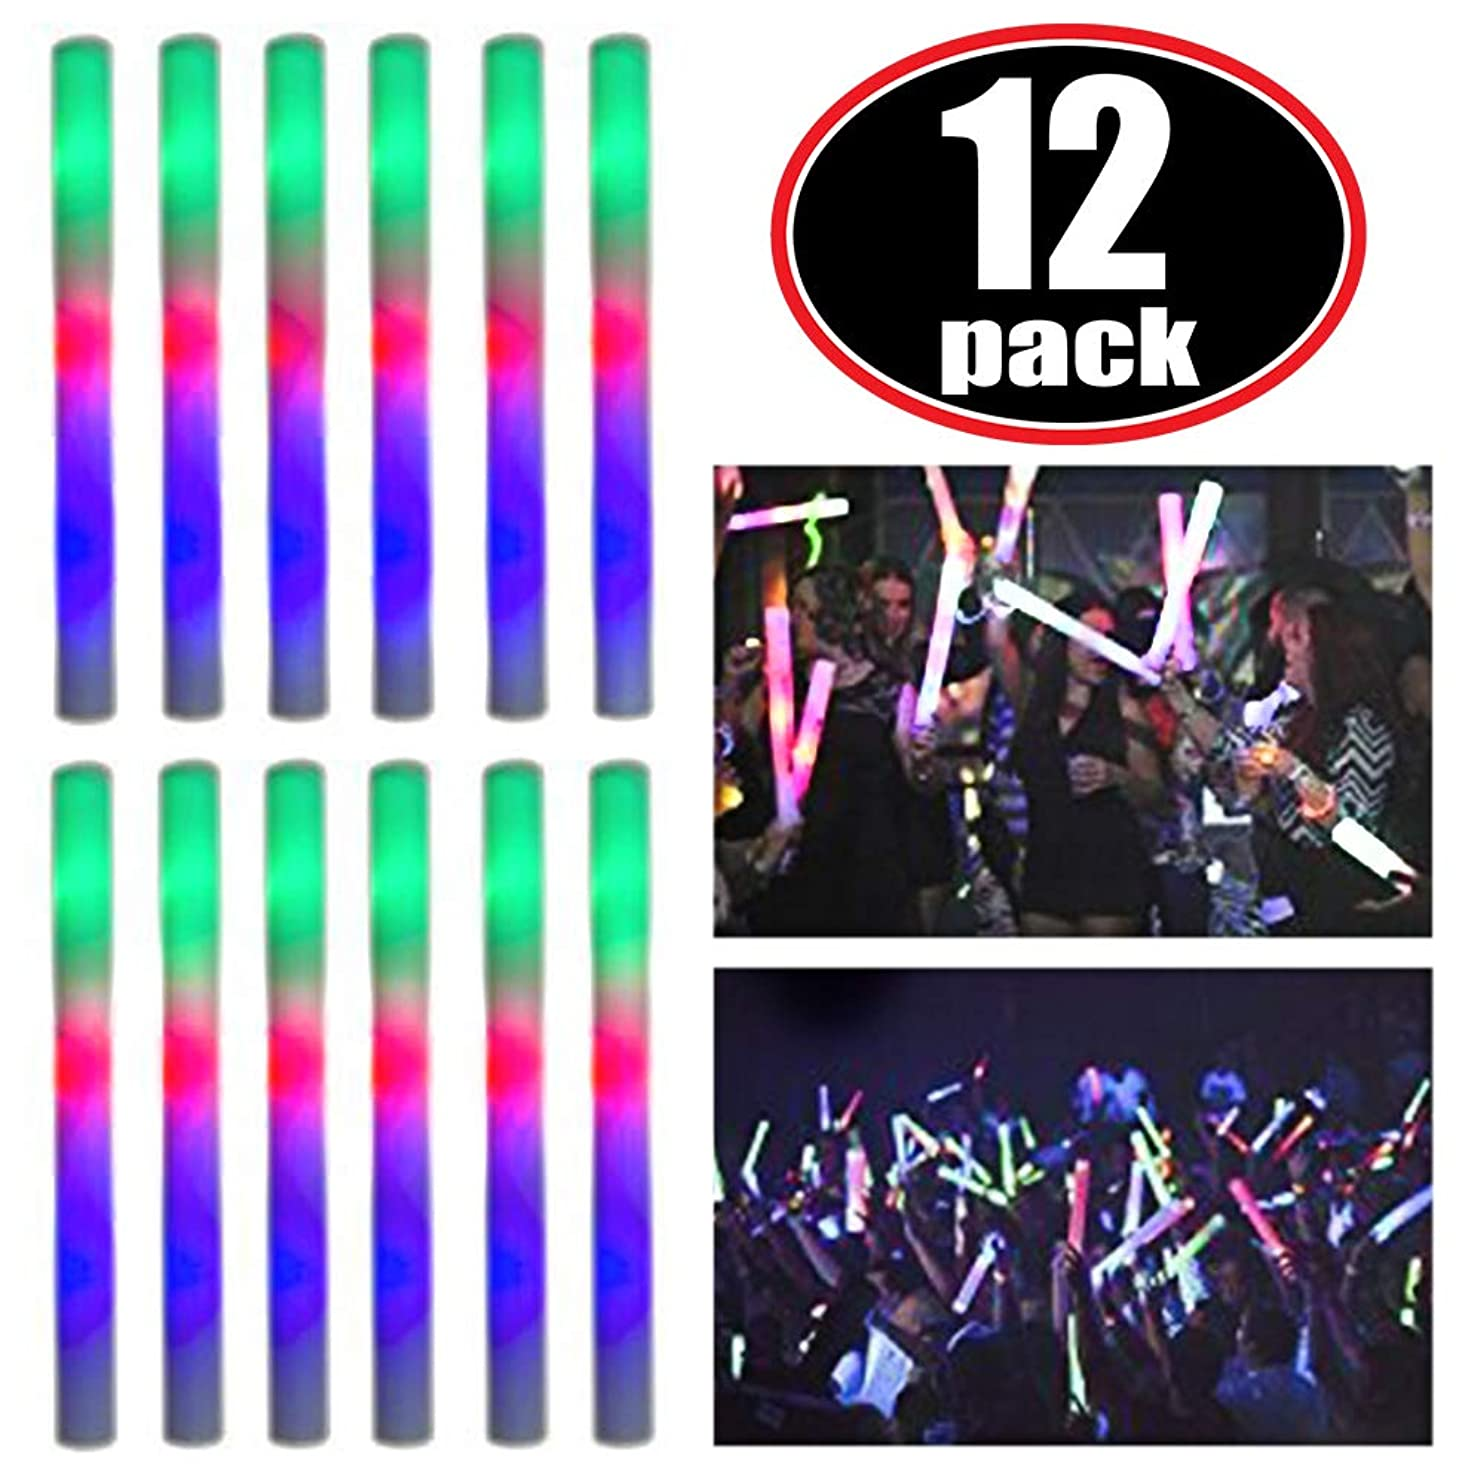 Super Z Outlet Upgraded Light up Foam Sticks, 3 Modes Colorful Flashing LED Strobe Stick for Party, Concert and Event (12 Pack) dowwgiclecj01